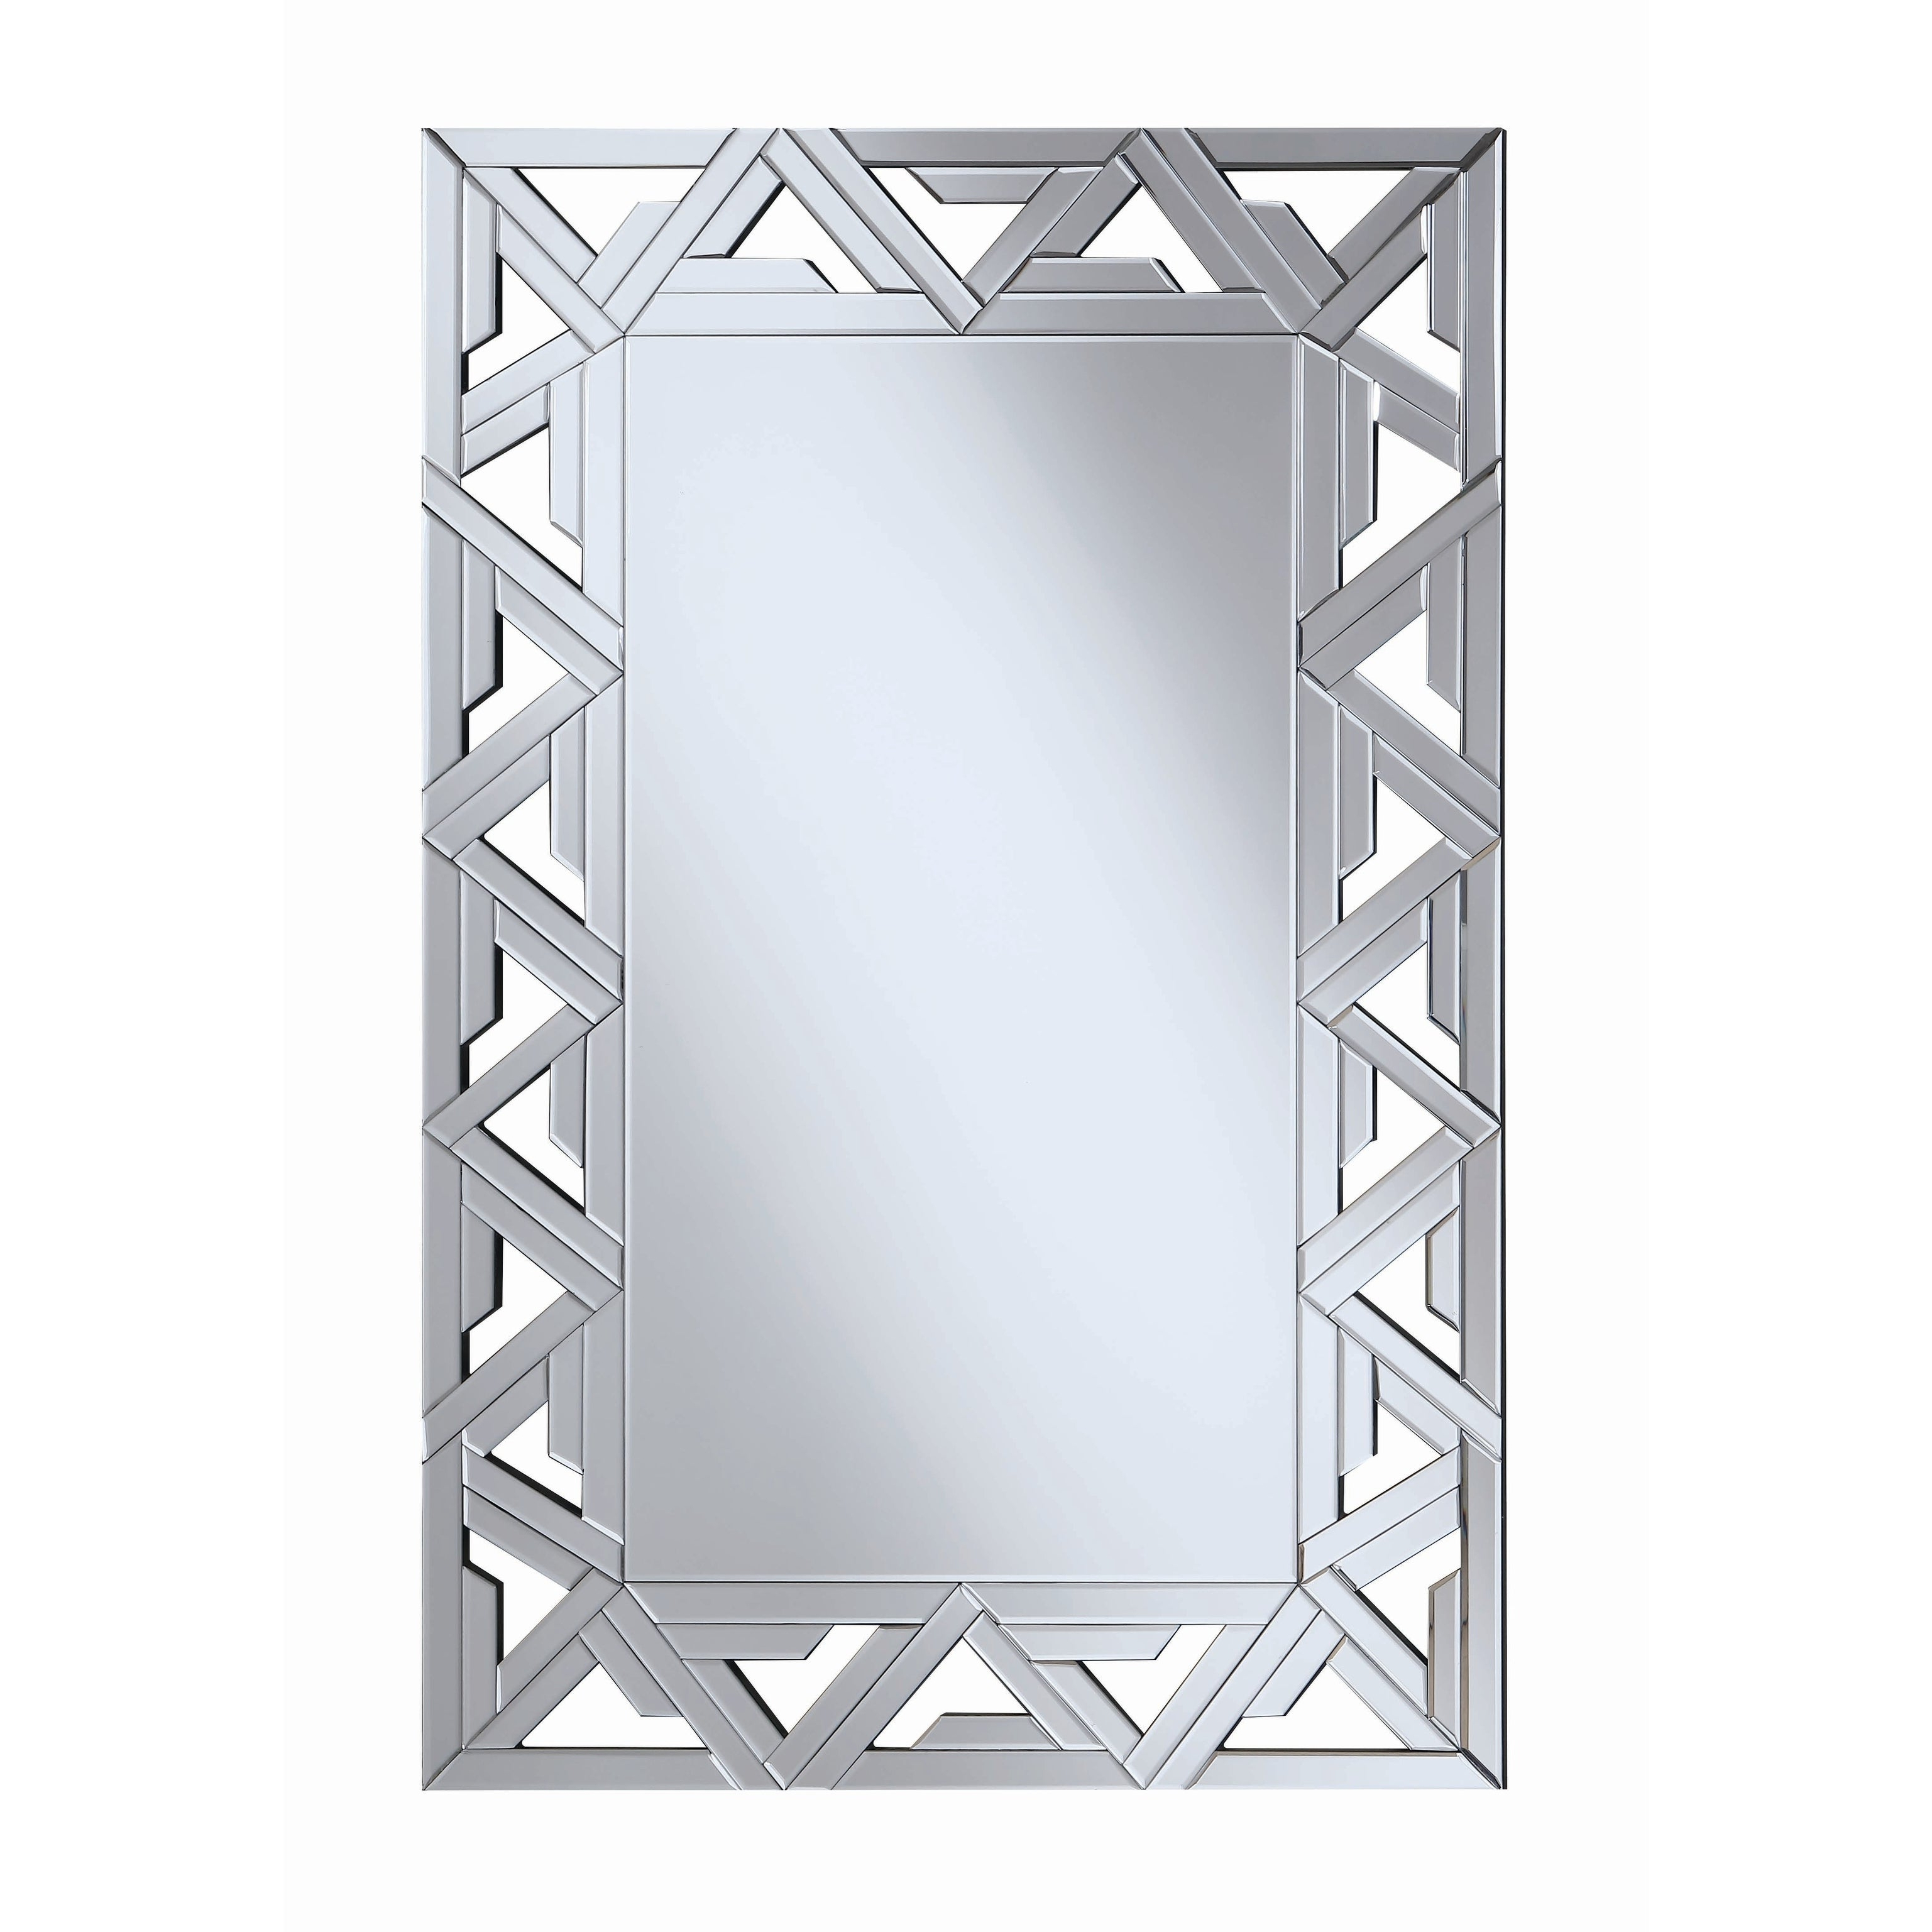 2019 Contemporary Silver Geometric Wall Mirror Throughout Silver Wall Mirrors (View 14 of 20)